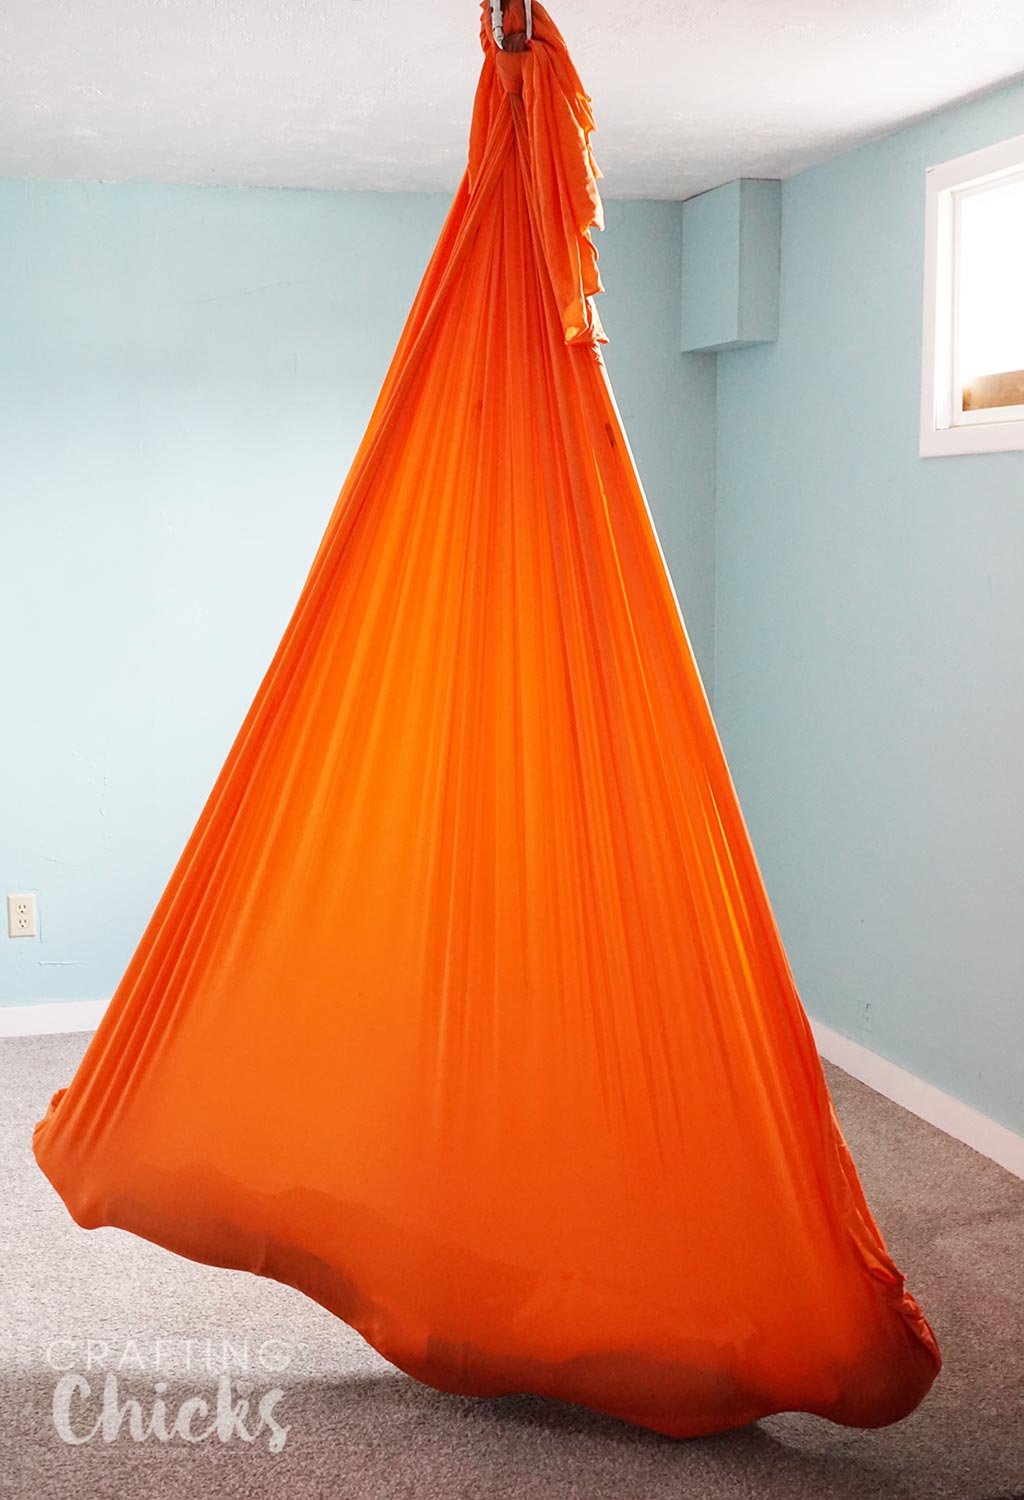 Yoga Hammock for SPD therapy - What you need to set up a therapy gym at home for sensory processing disorder.